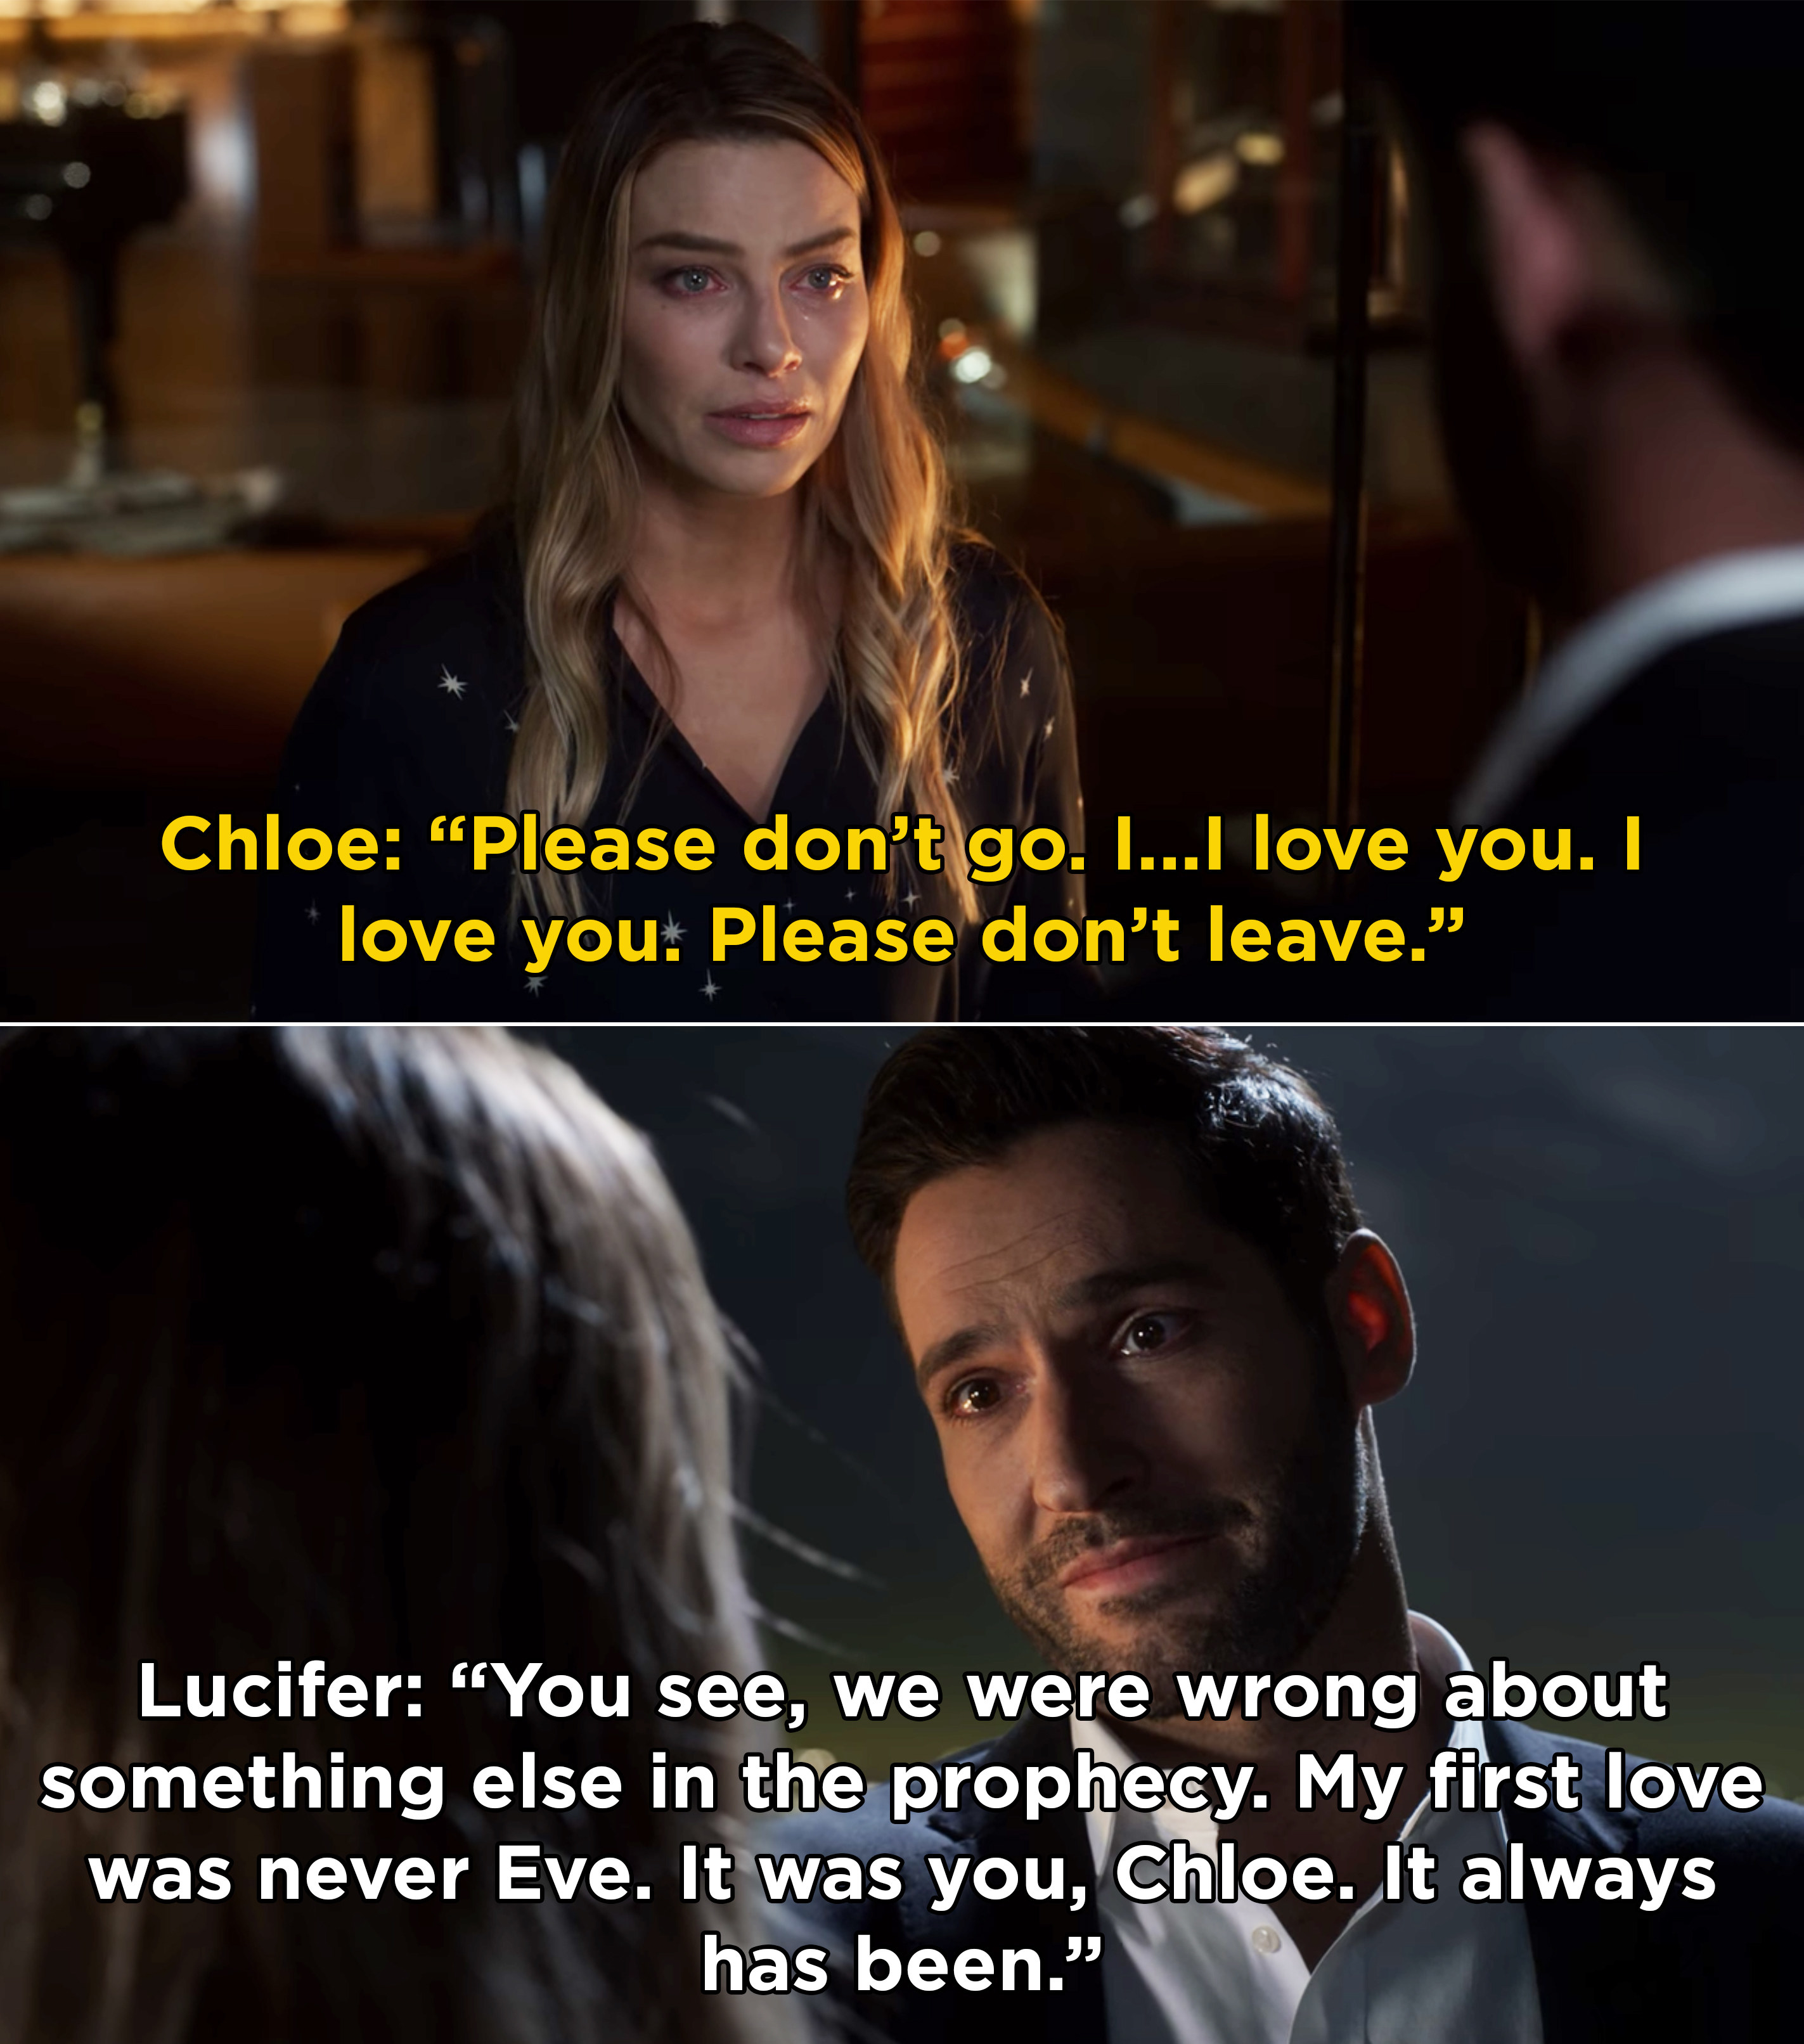 """Lucifer telling Chloe, """"You see, we were wrong about something else in the prophecy. My first love was never Eve. It was you, Chloe. It always has been"""""""